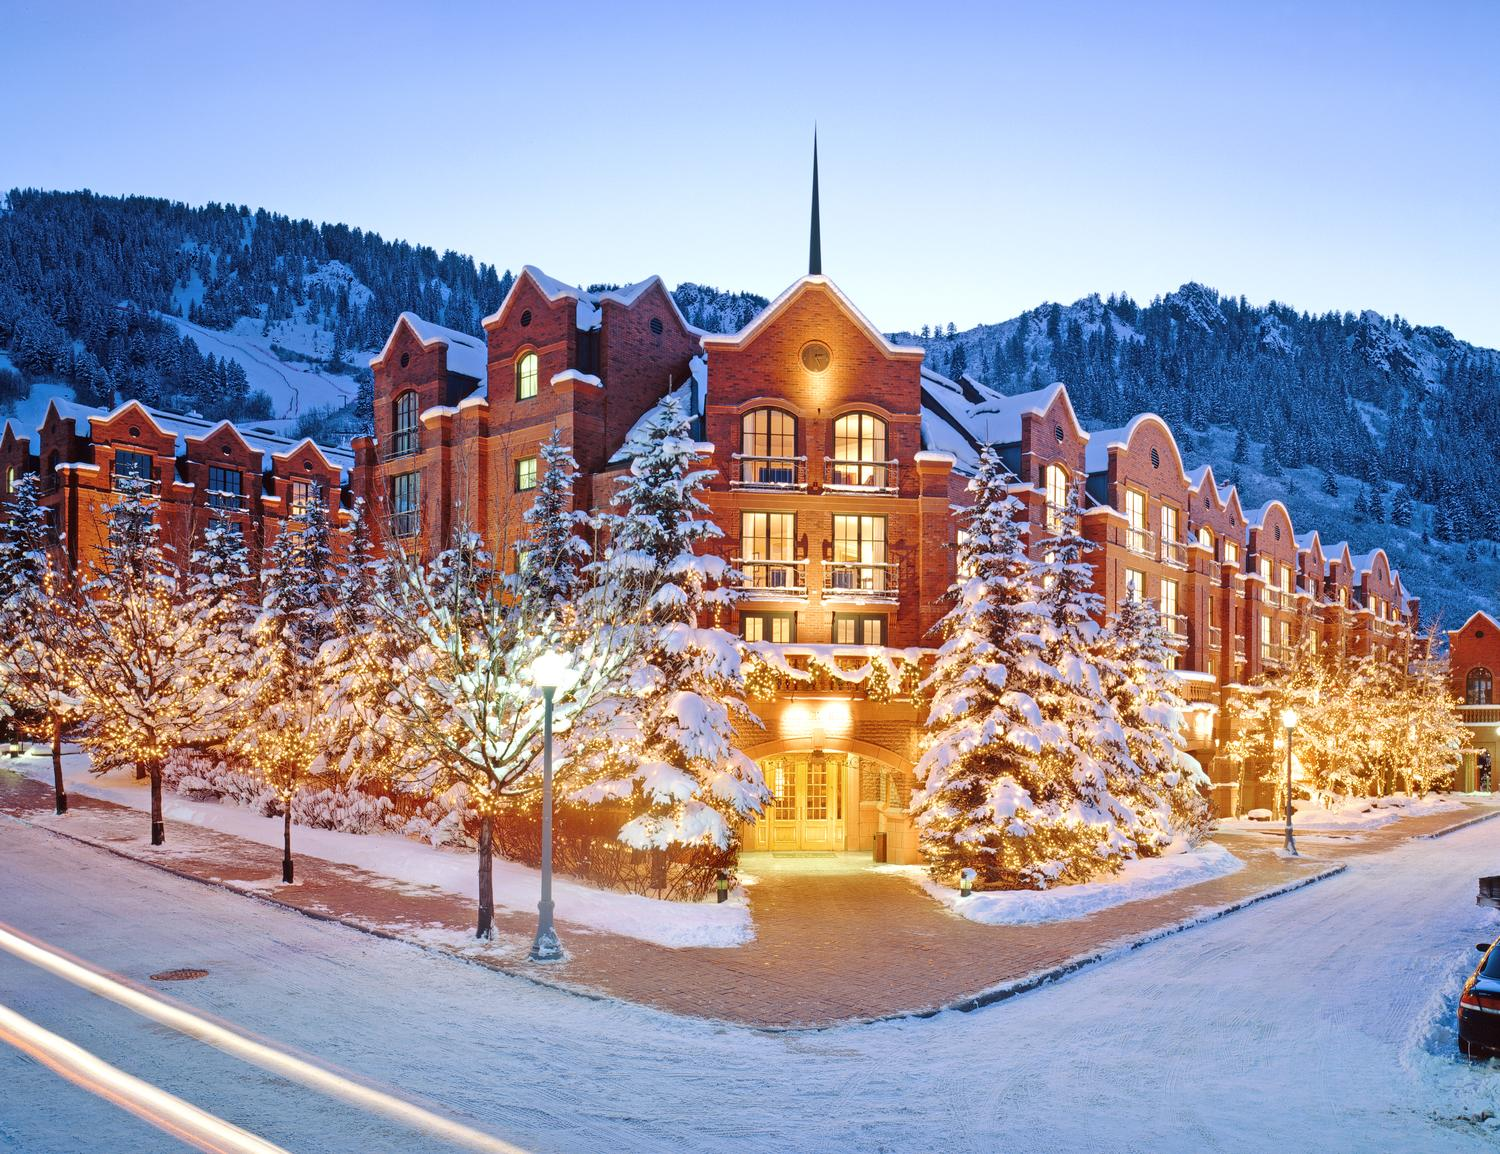 St Regis Aspen resort in the snow